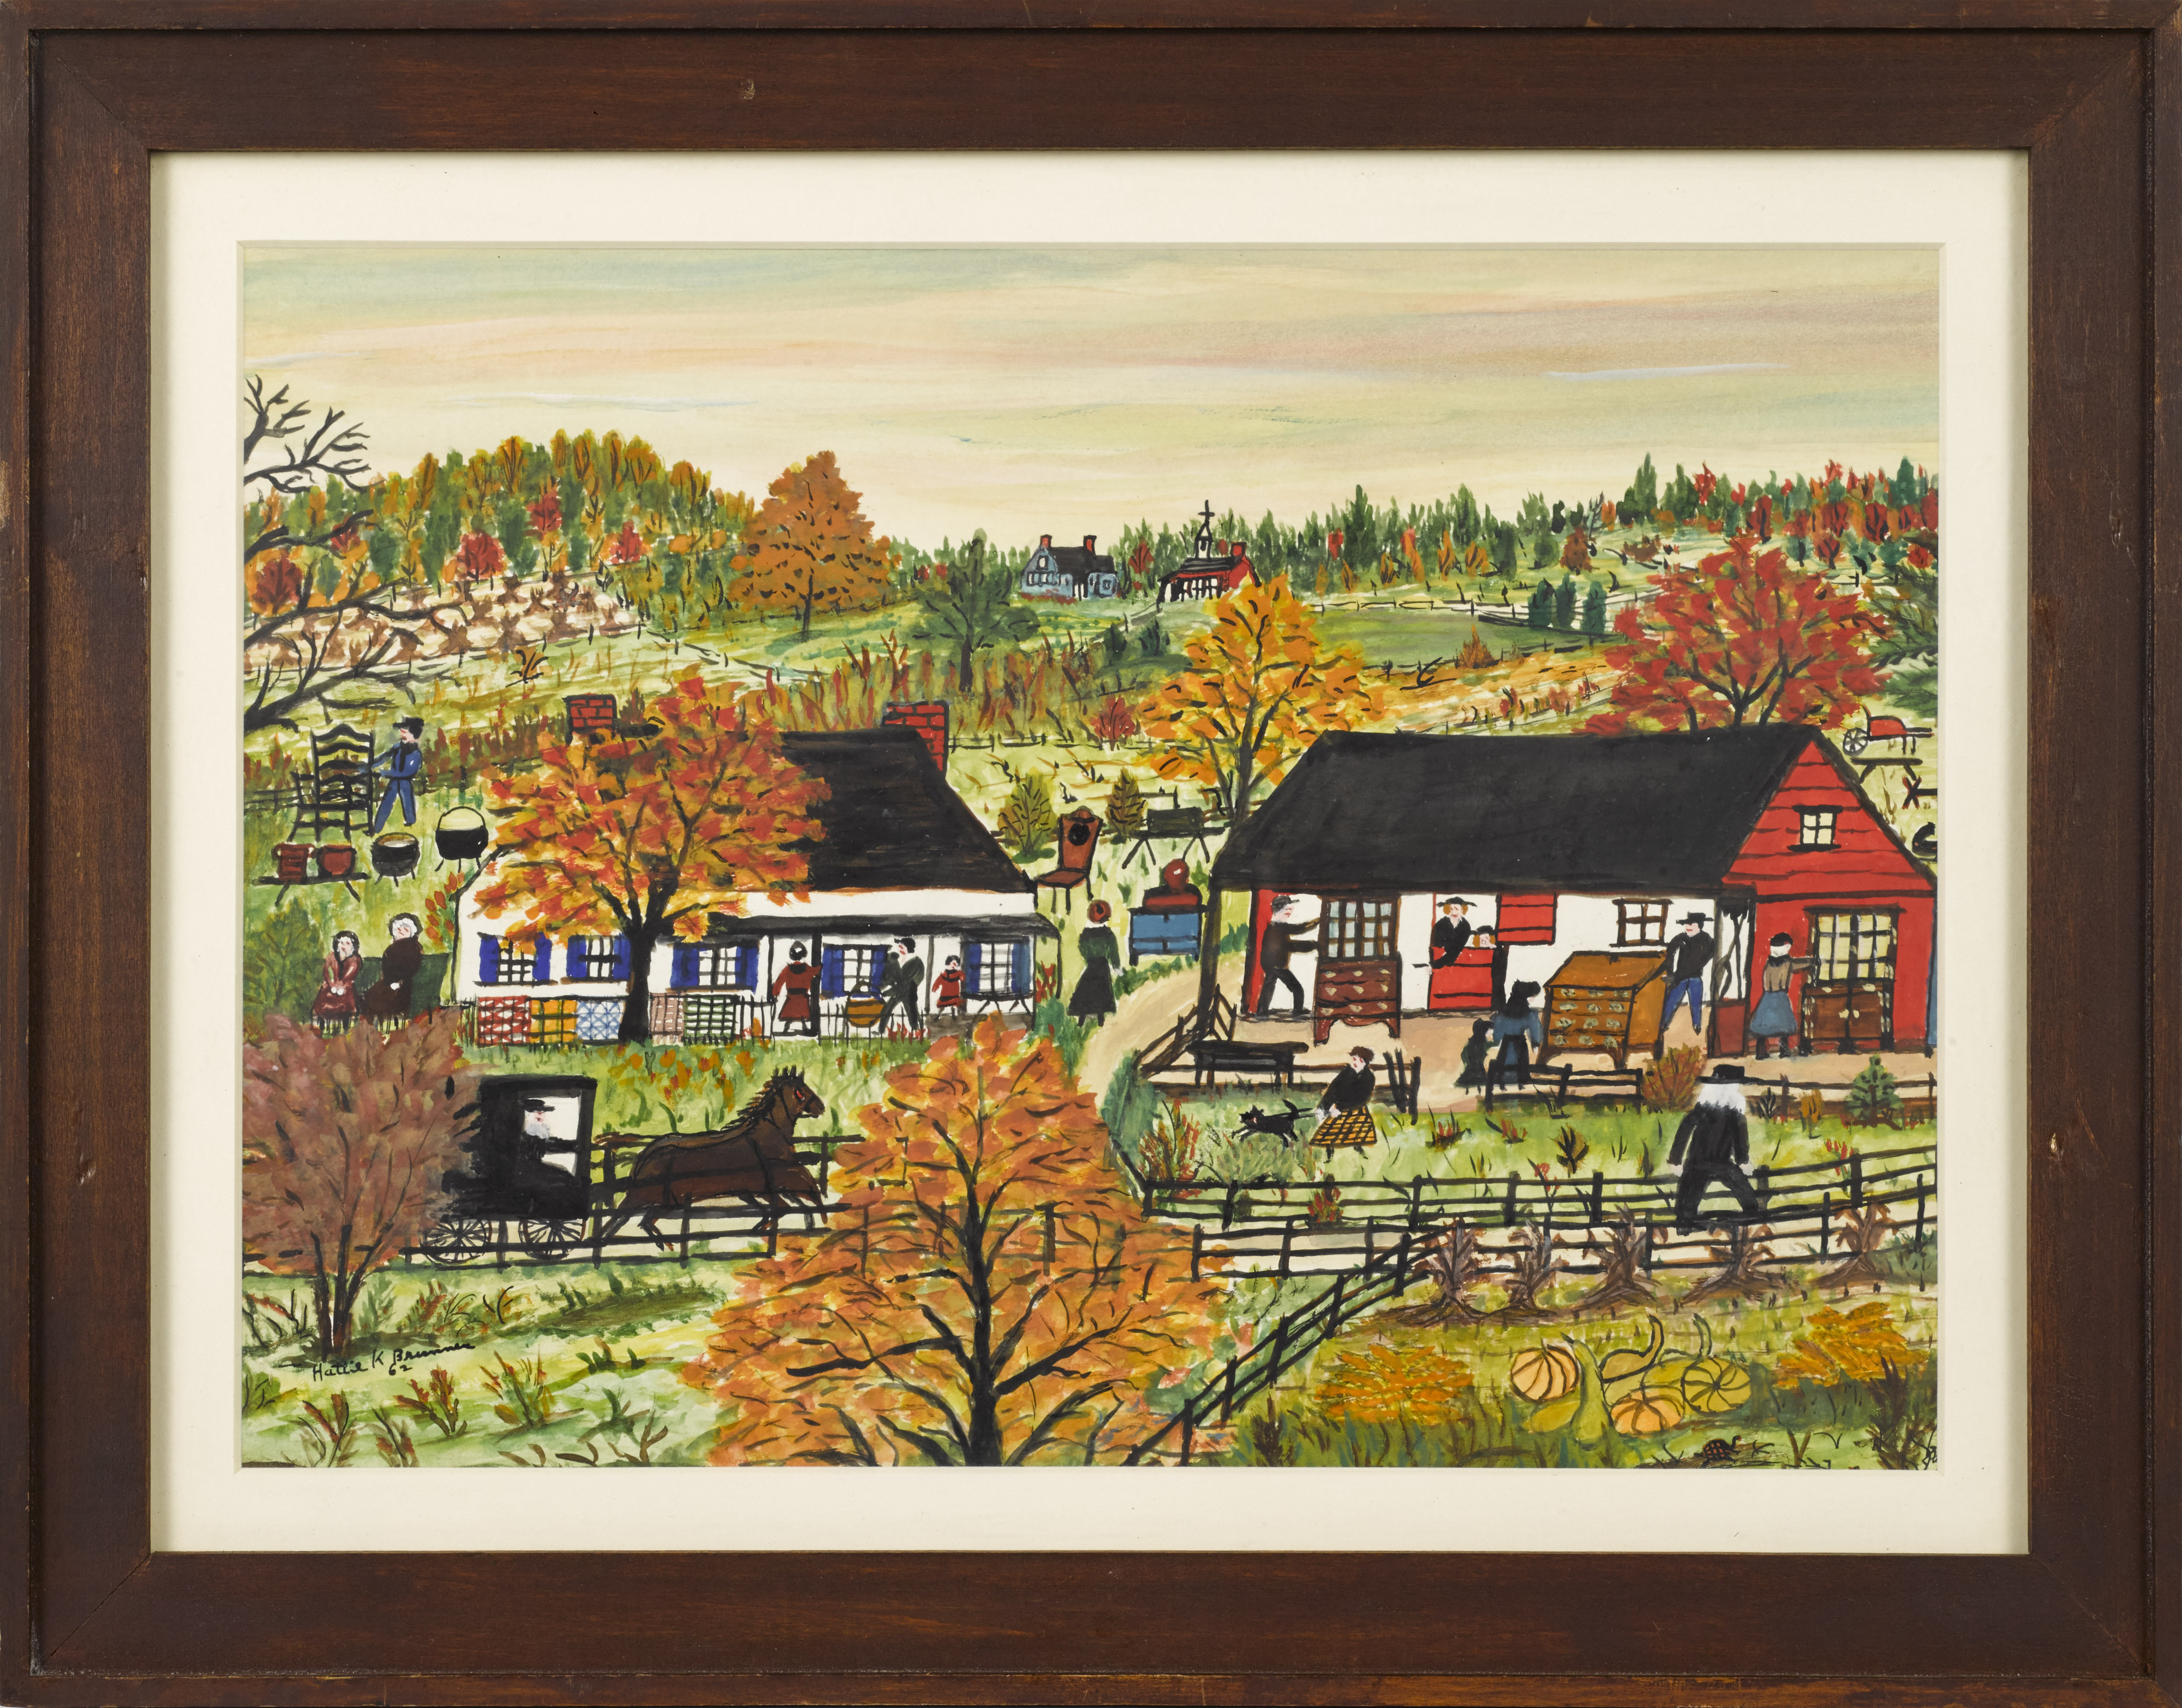 Hattie Klapp Brunner (American, 1889-1982) watercolor and gouache on paper painting, fall Amish auction scene, signed and dated '62 in lower left.